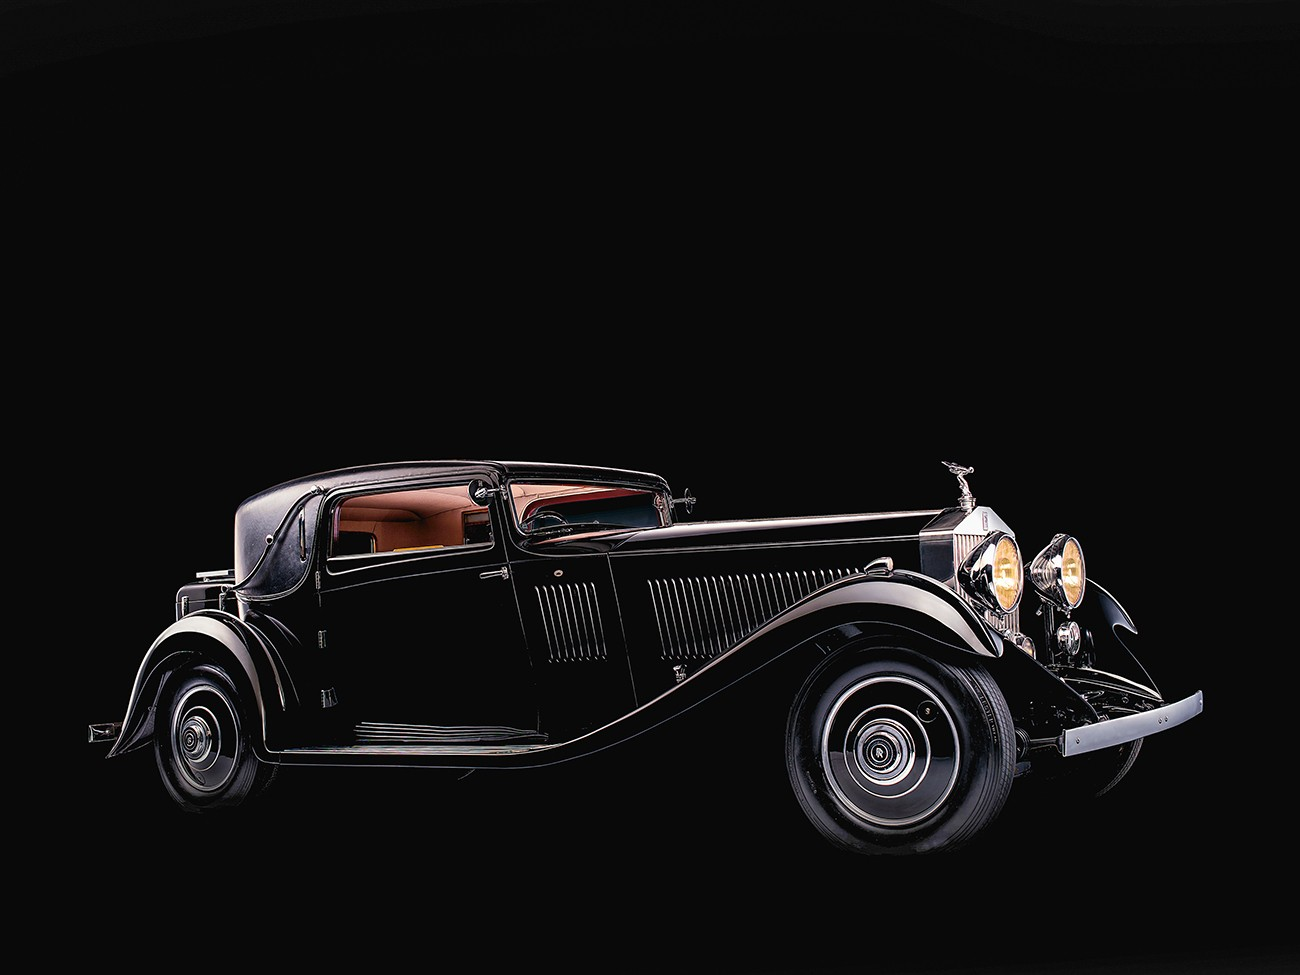 Here's a Look at Why Black Badge Rolls-Royce Cars are Steeped in History